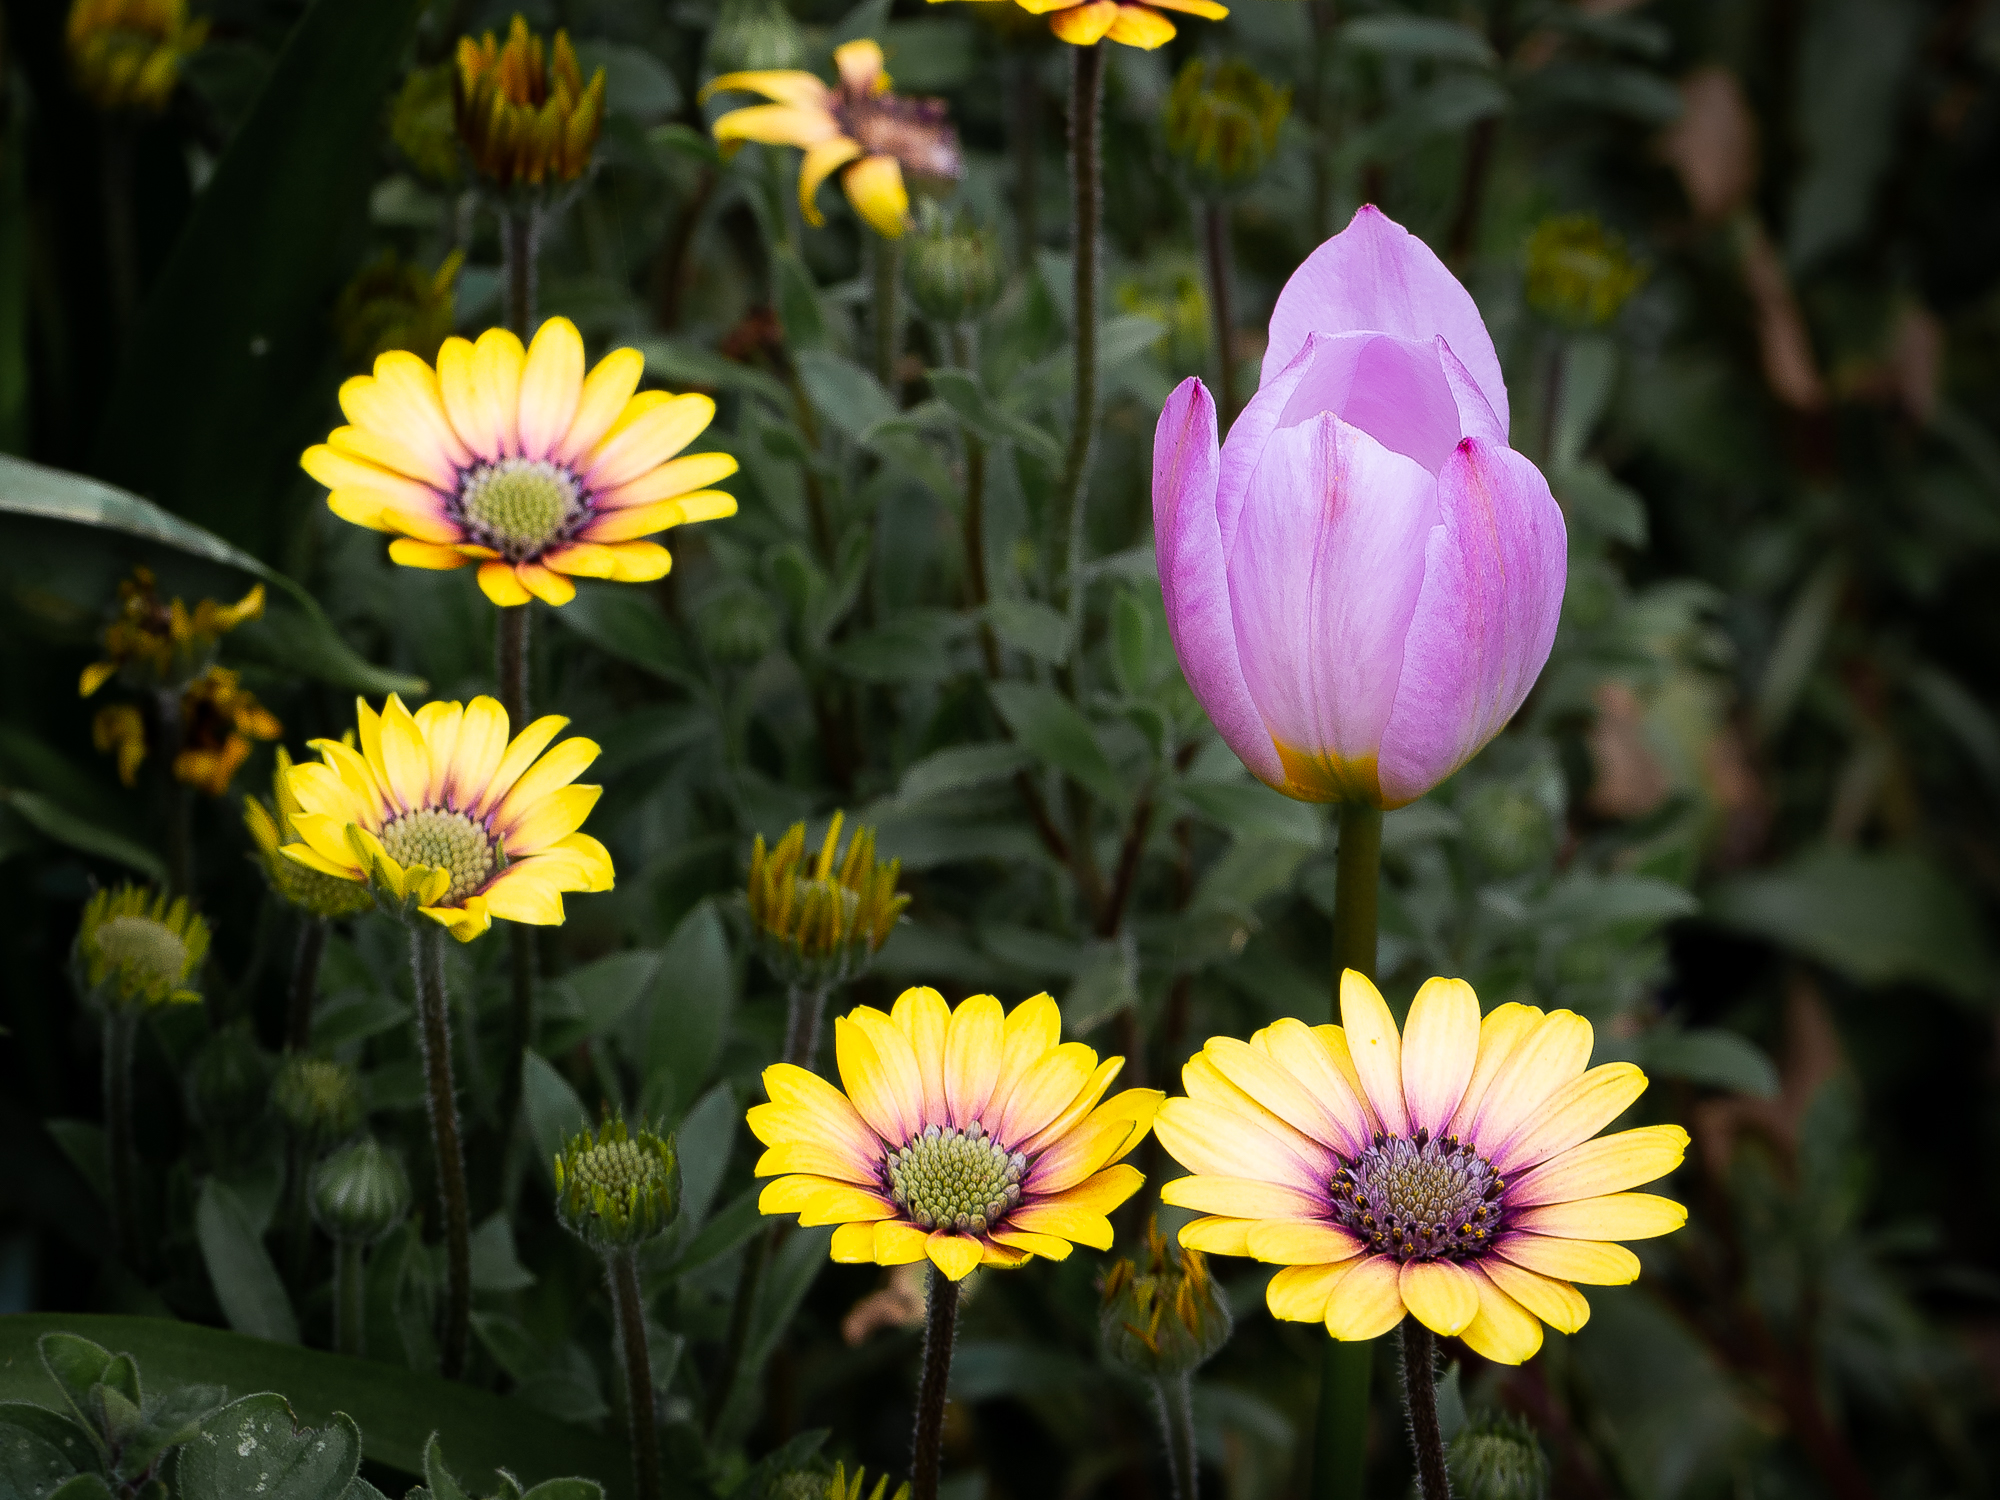 A tulip and osteospermum flowers display inverse colouring